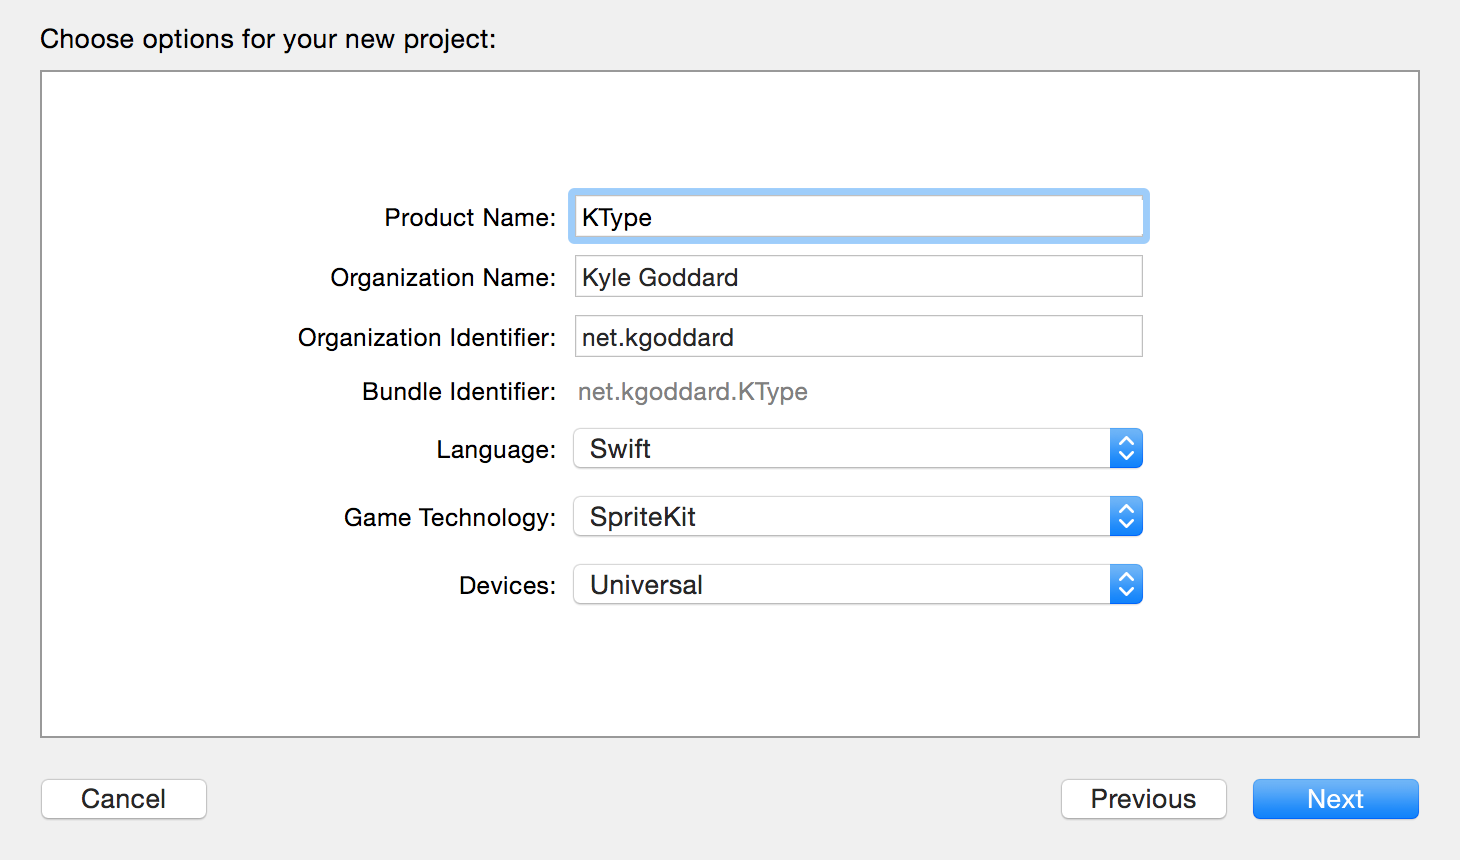 Xcode project options screen.